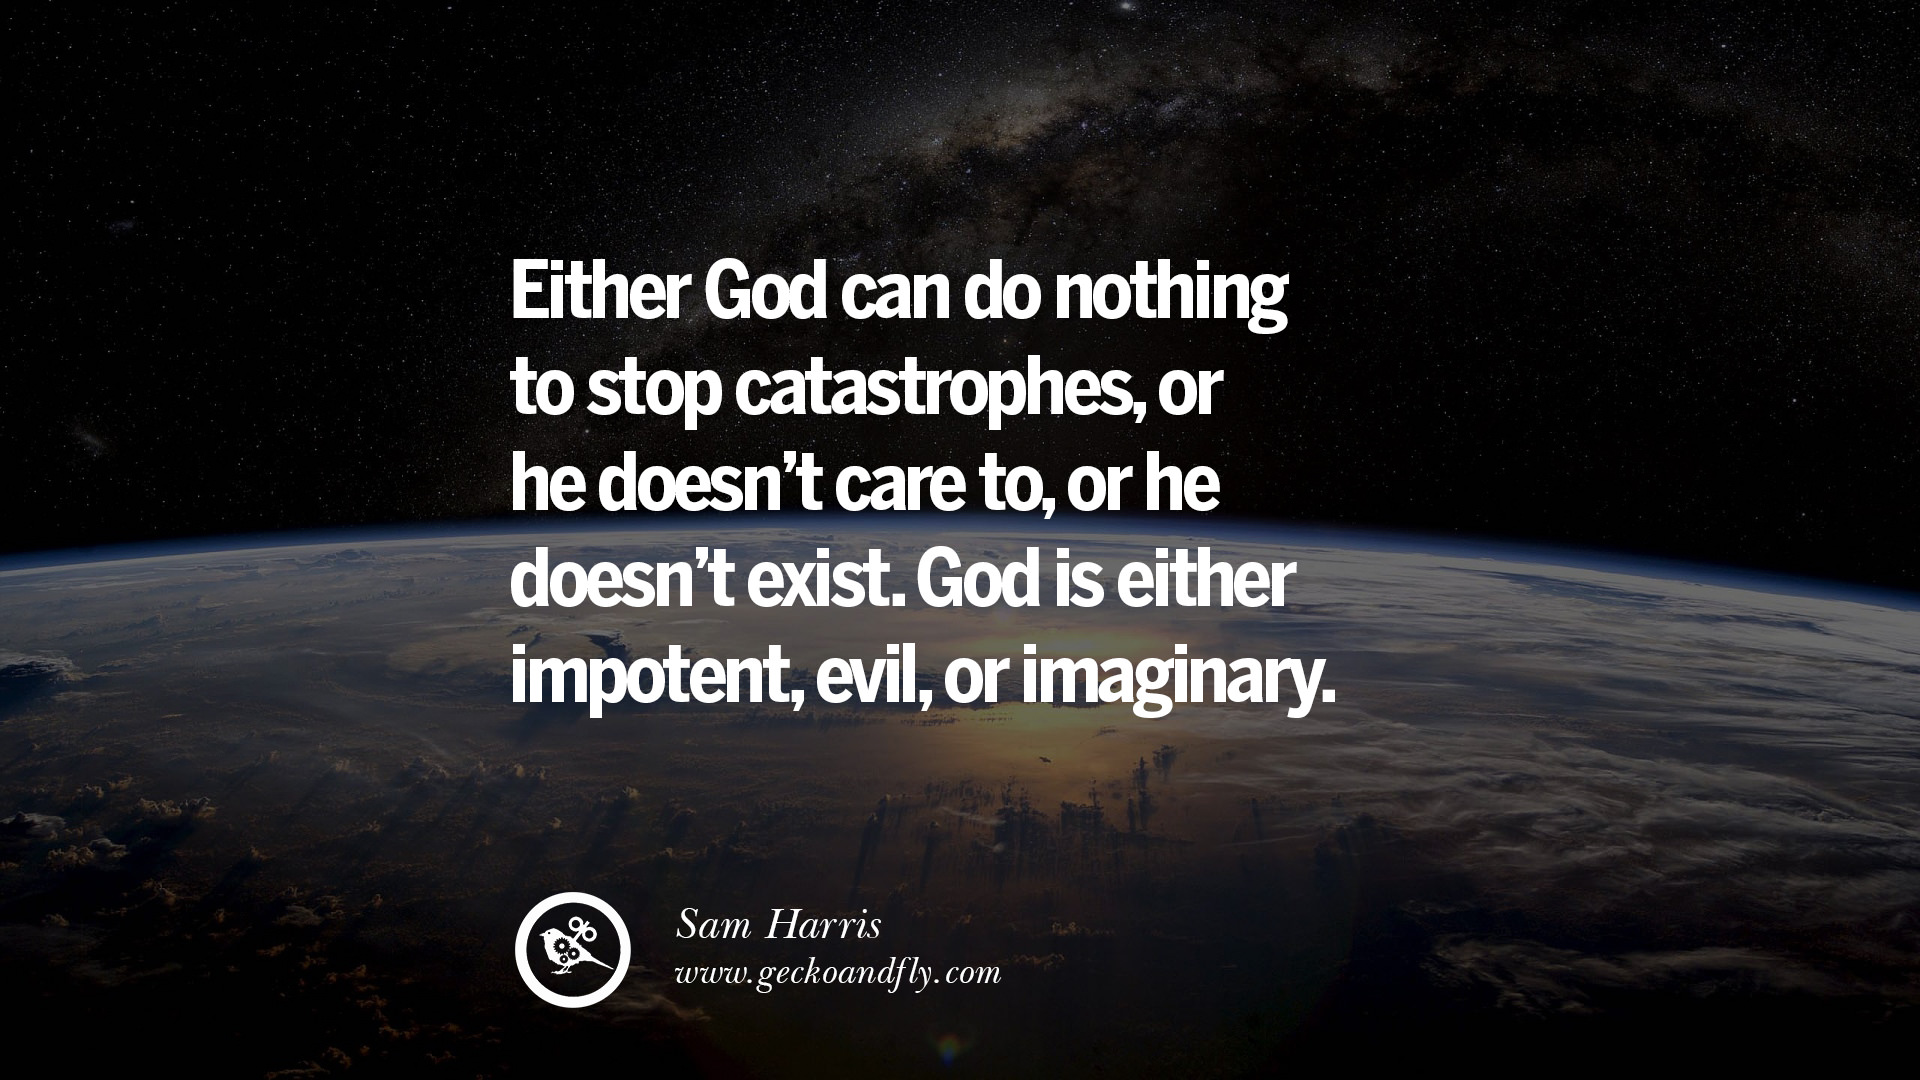 Atheist Quotes and Sayings From Famous Atheists and Others